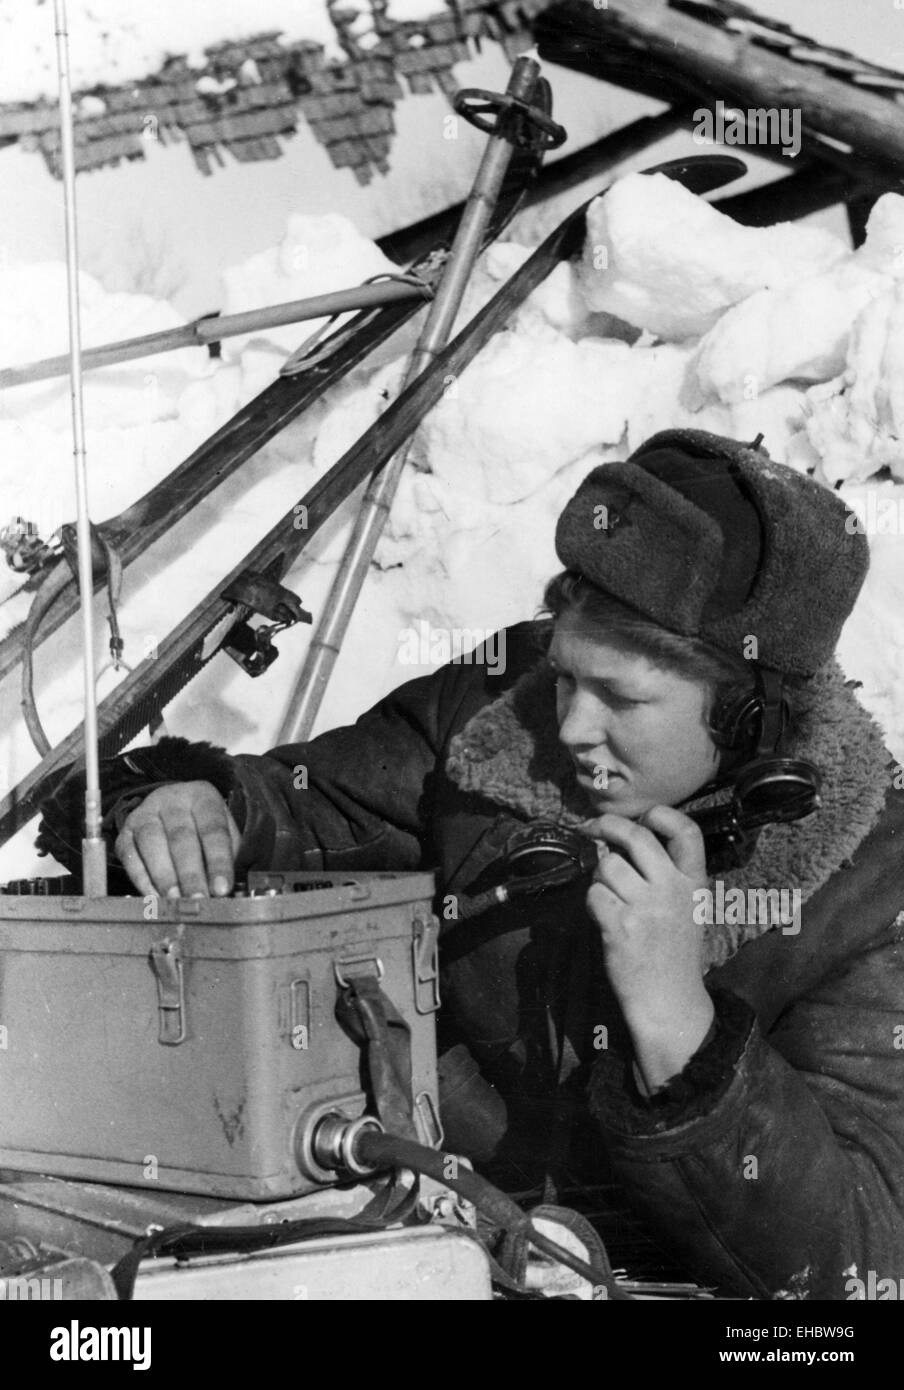 WOMAN RADIO OPERATOR Ludmille Plakshe with Red Army Arctic warfare unit about 1943 - Stock Image